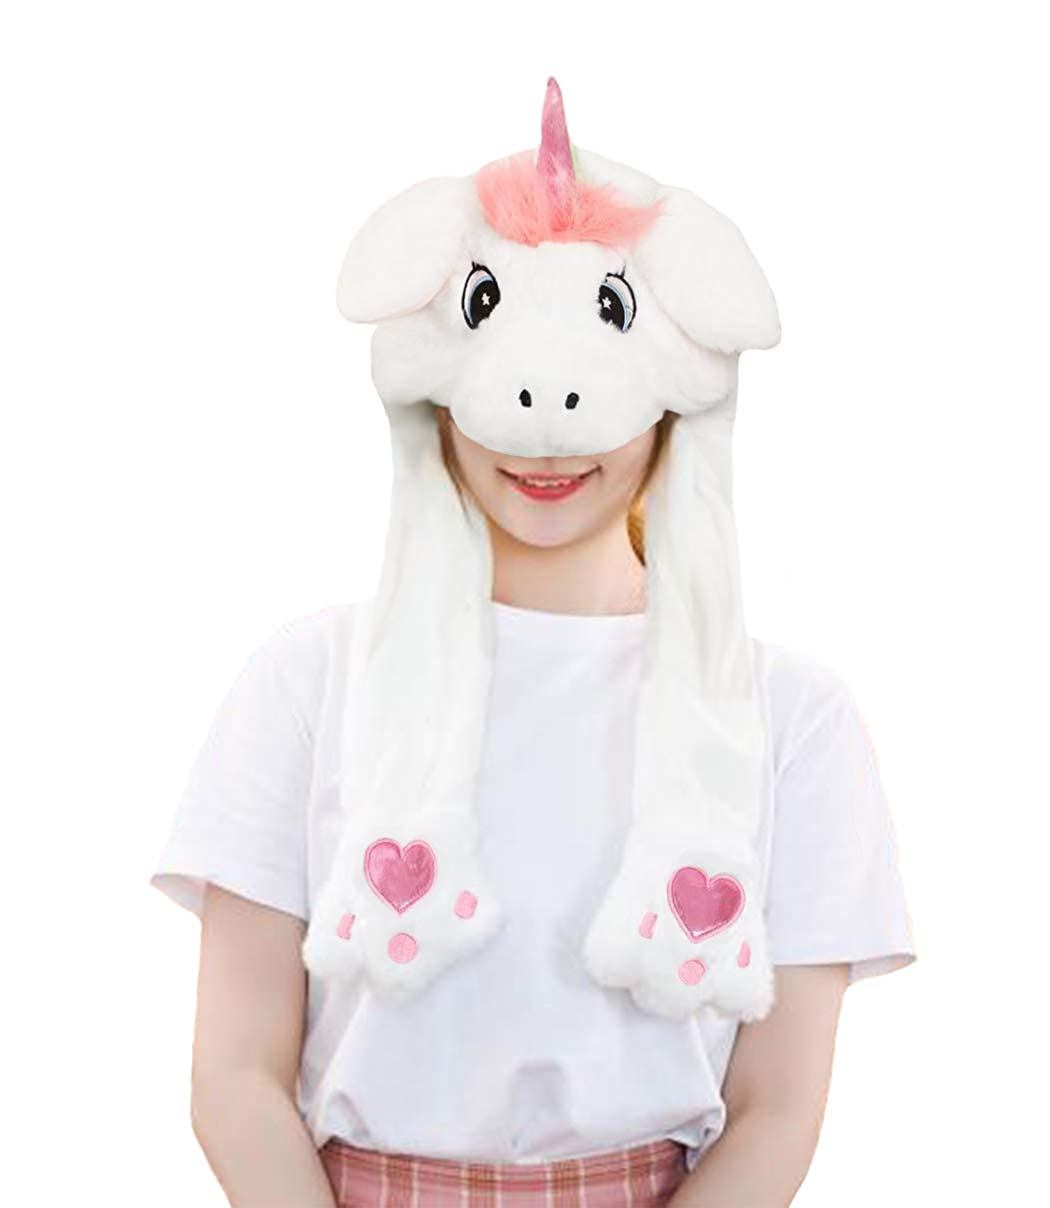 dressfan Women Girls Funny Plush Animal Ear Hat Toy Birthday Gift With Moving Ears Pressing the Animal Cap Will Make the Ears Move Girls Boys Kids Women Cosplay